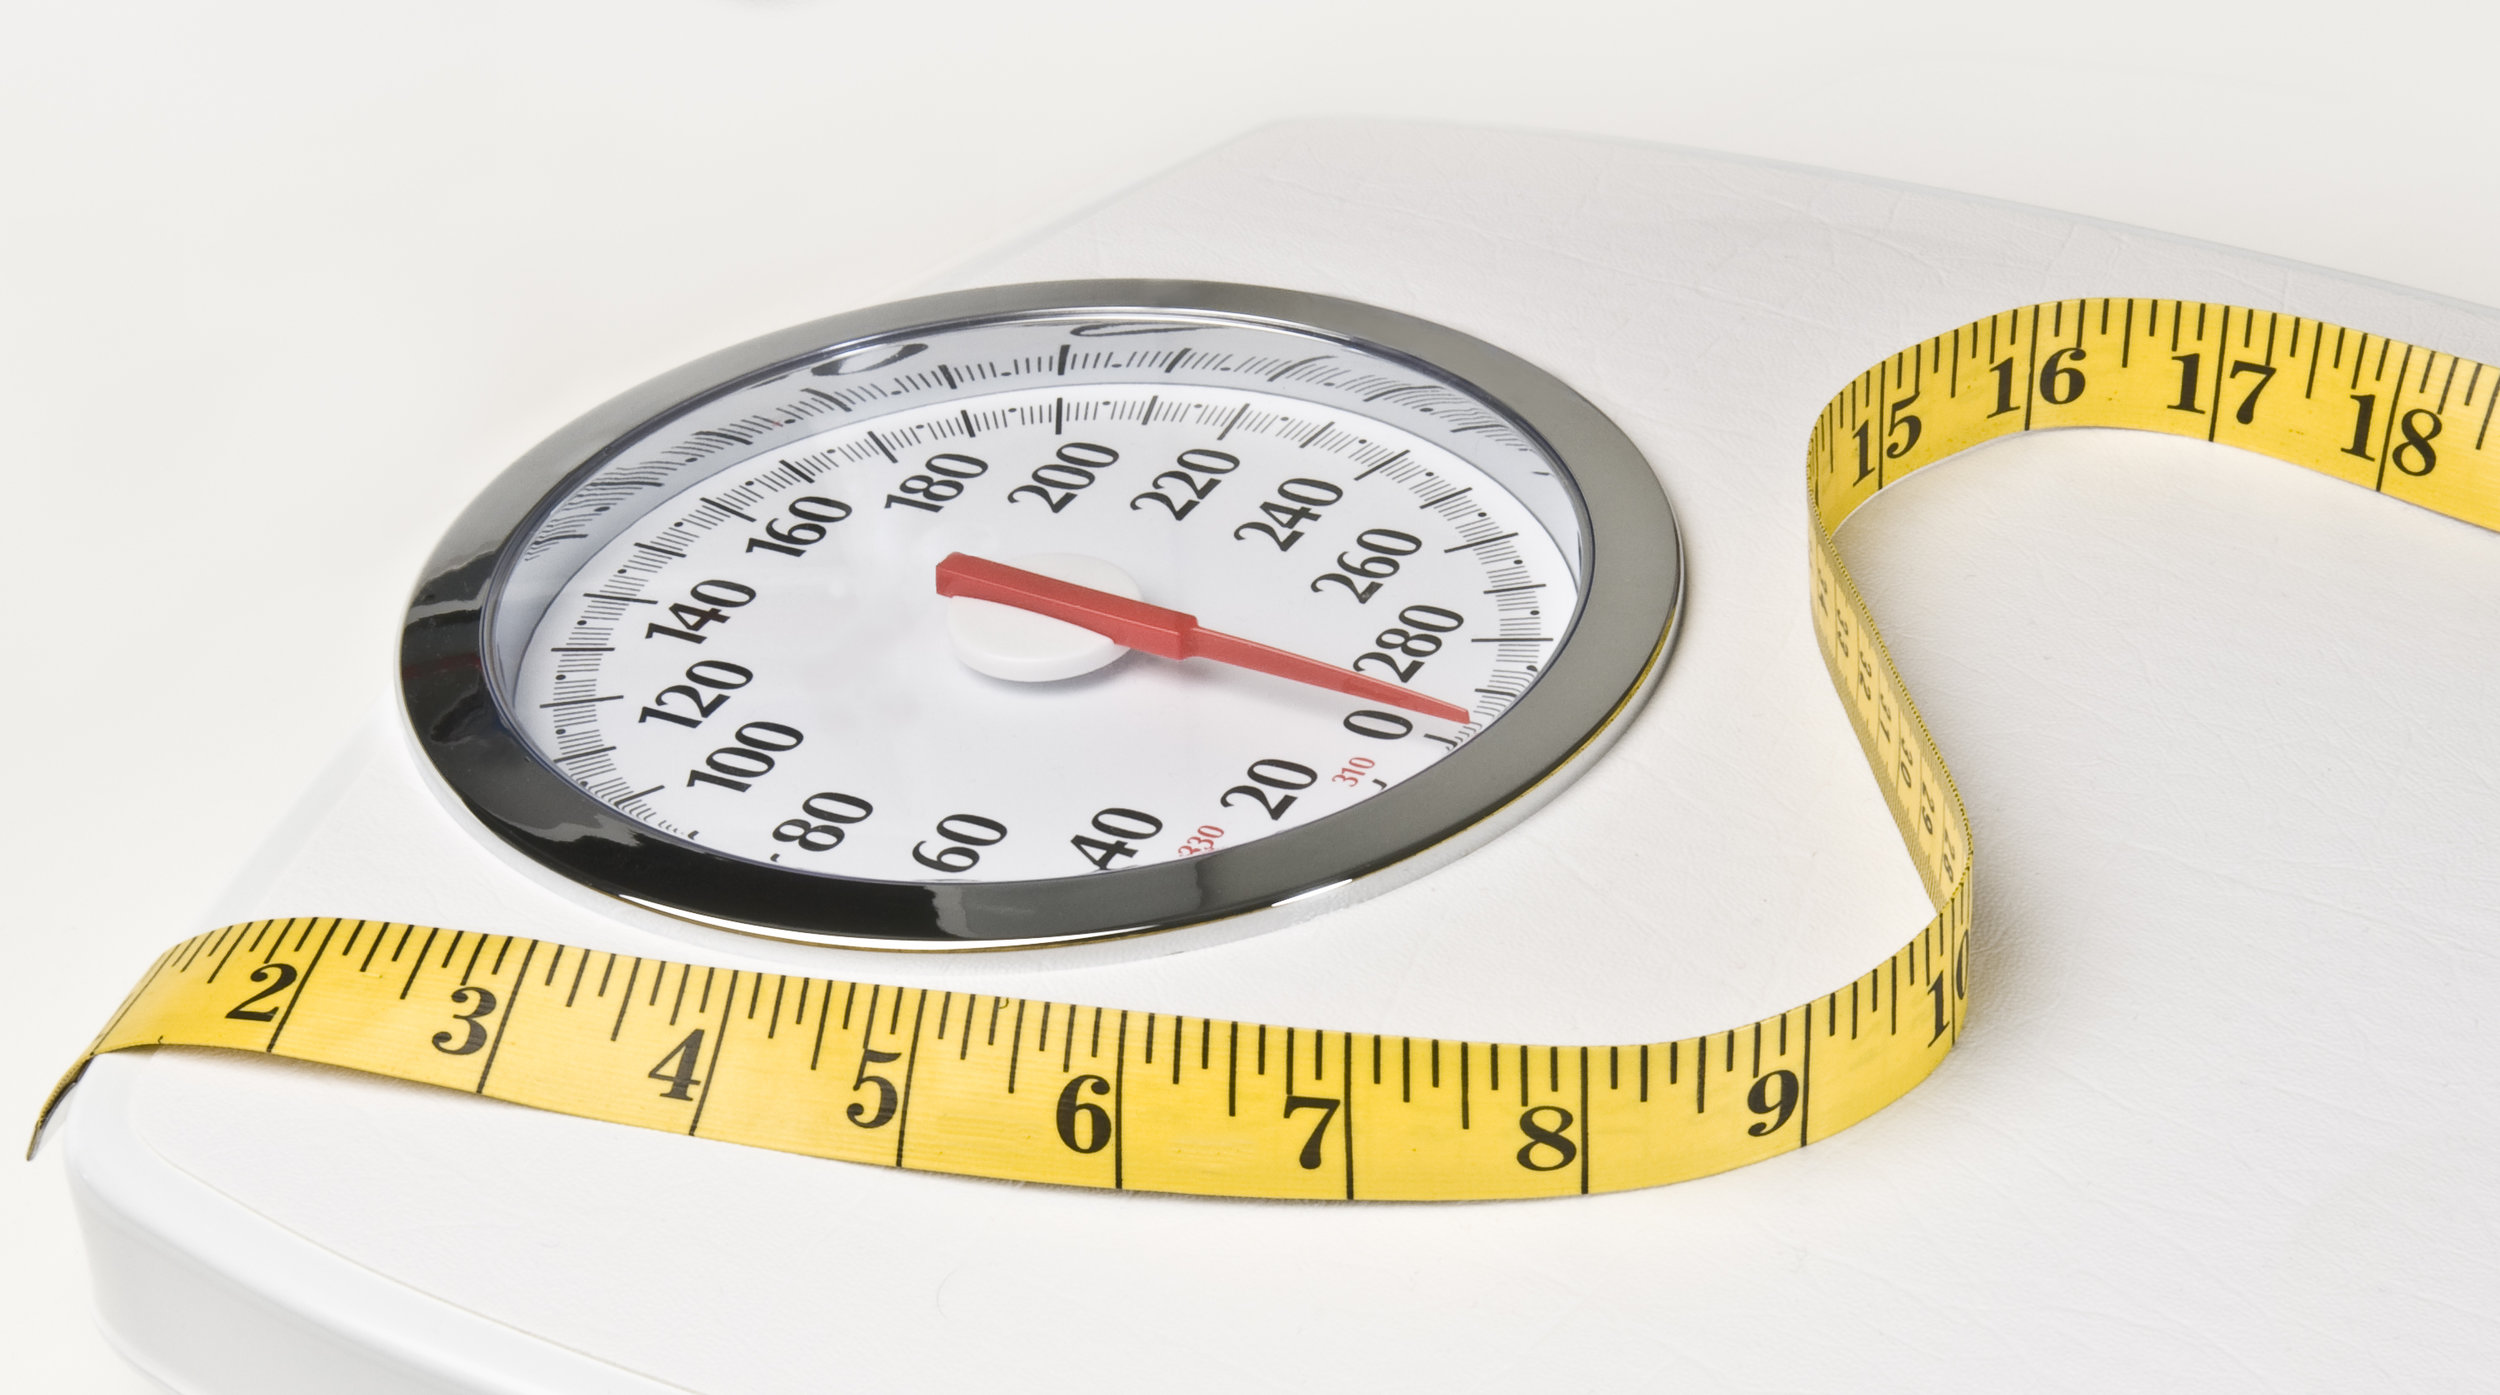 bathroom-scale-and-tape-measure_rFrPzapEs.jpg